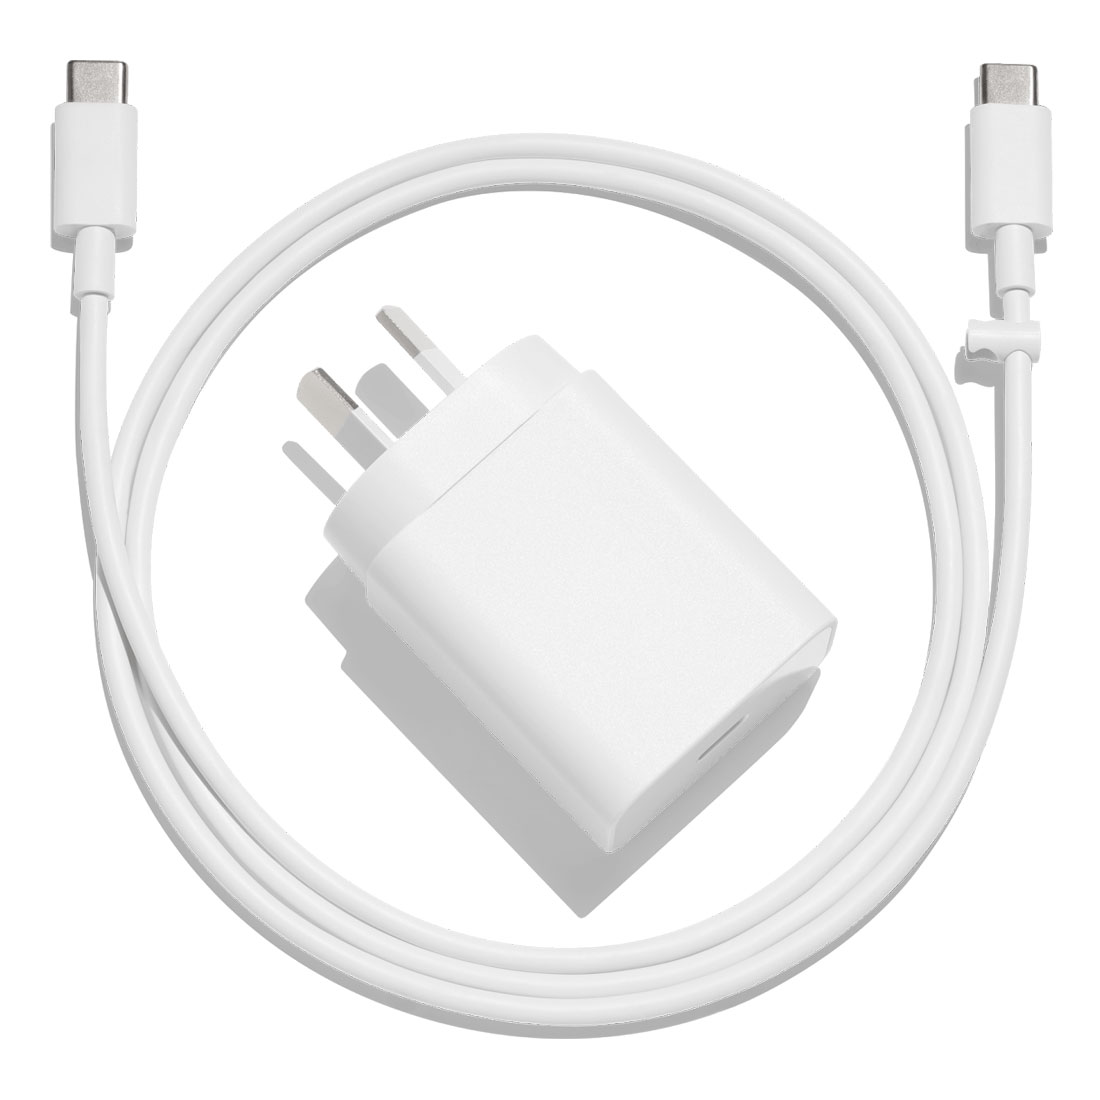 Google 18W USB-C Fast Charging Power Adapter - White